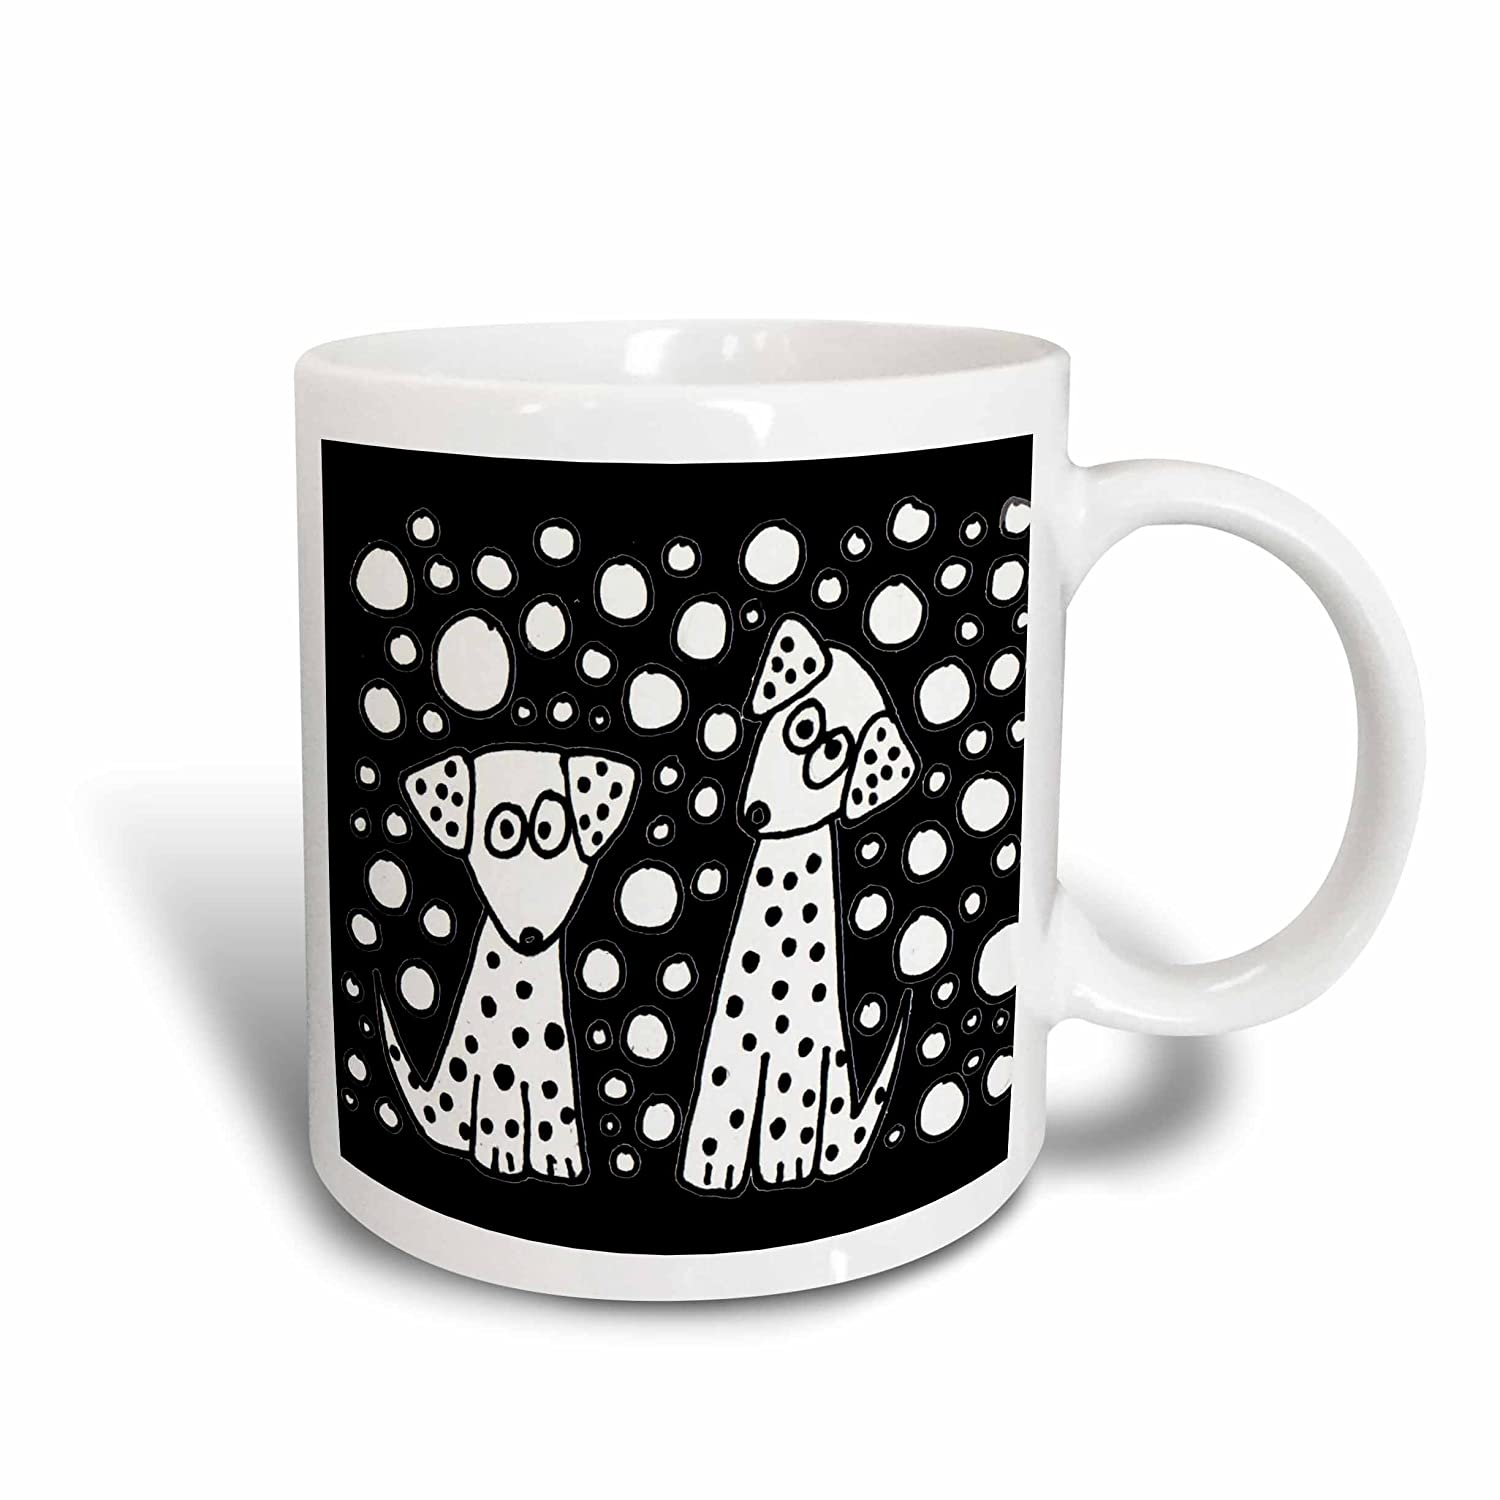 3dRose 201796/_2Funny Black and White Spotted Dogs Abstract Original Ceramic Mug 15 oz